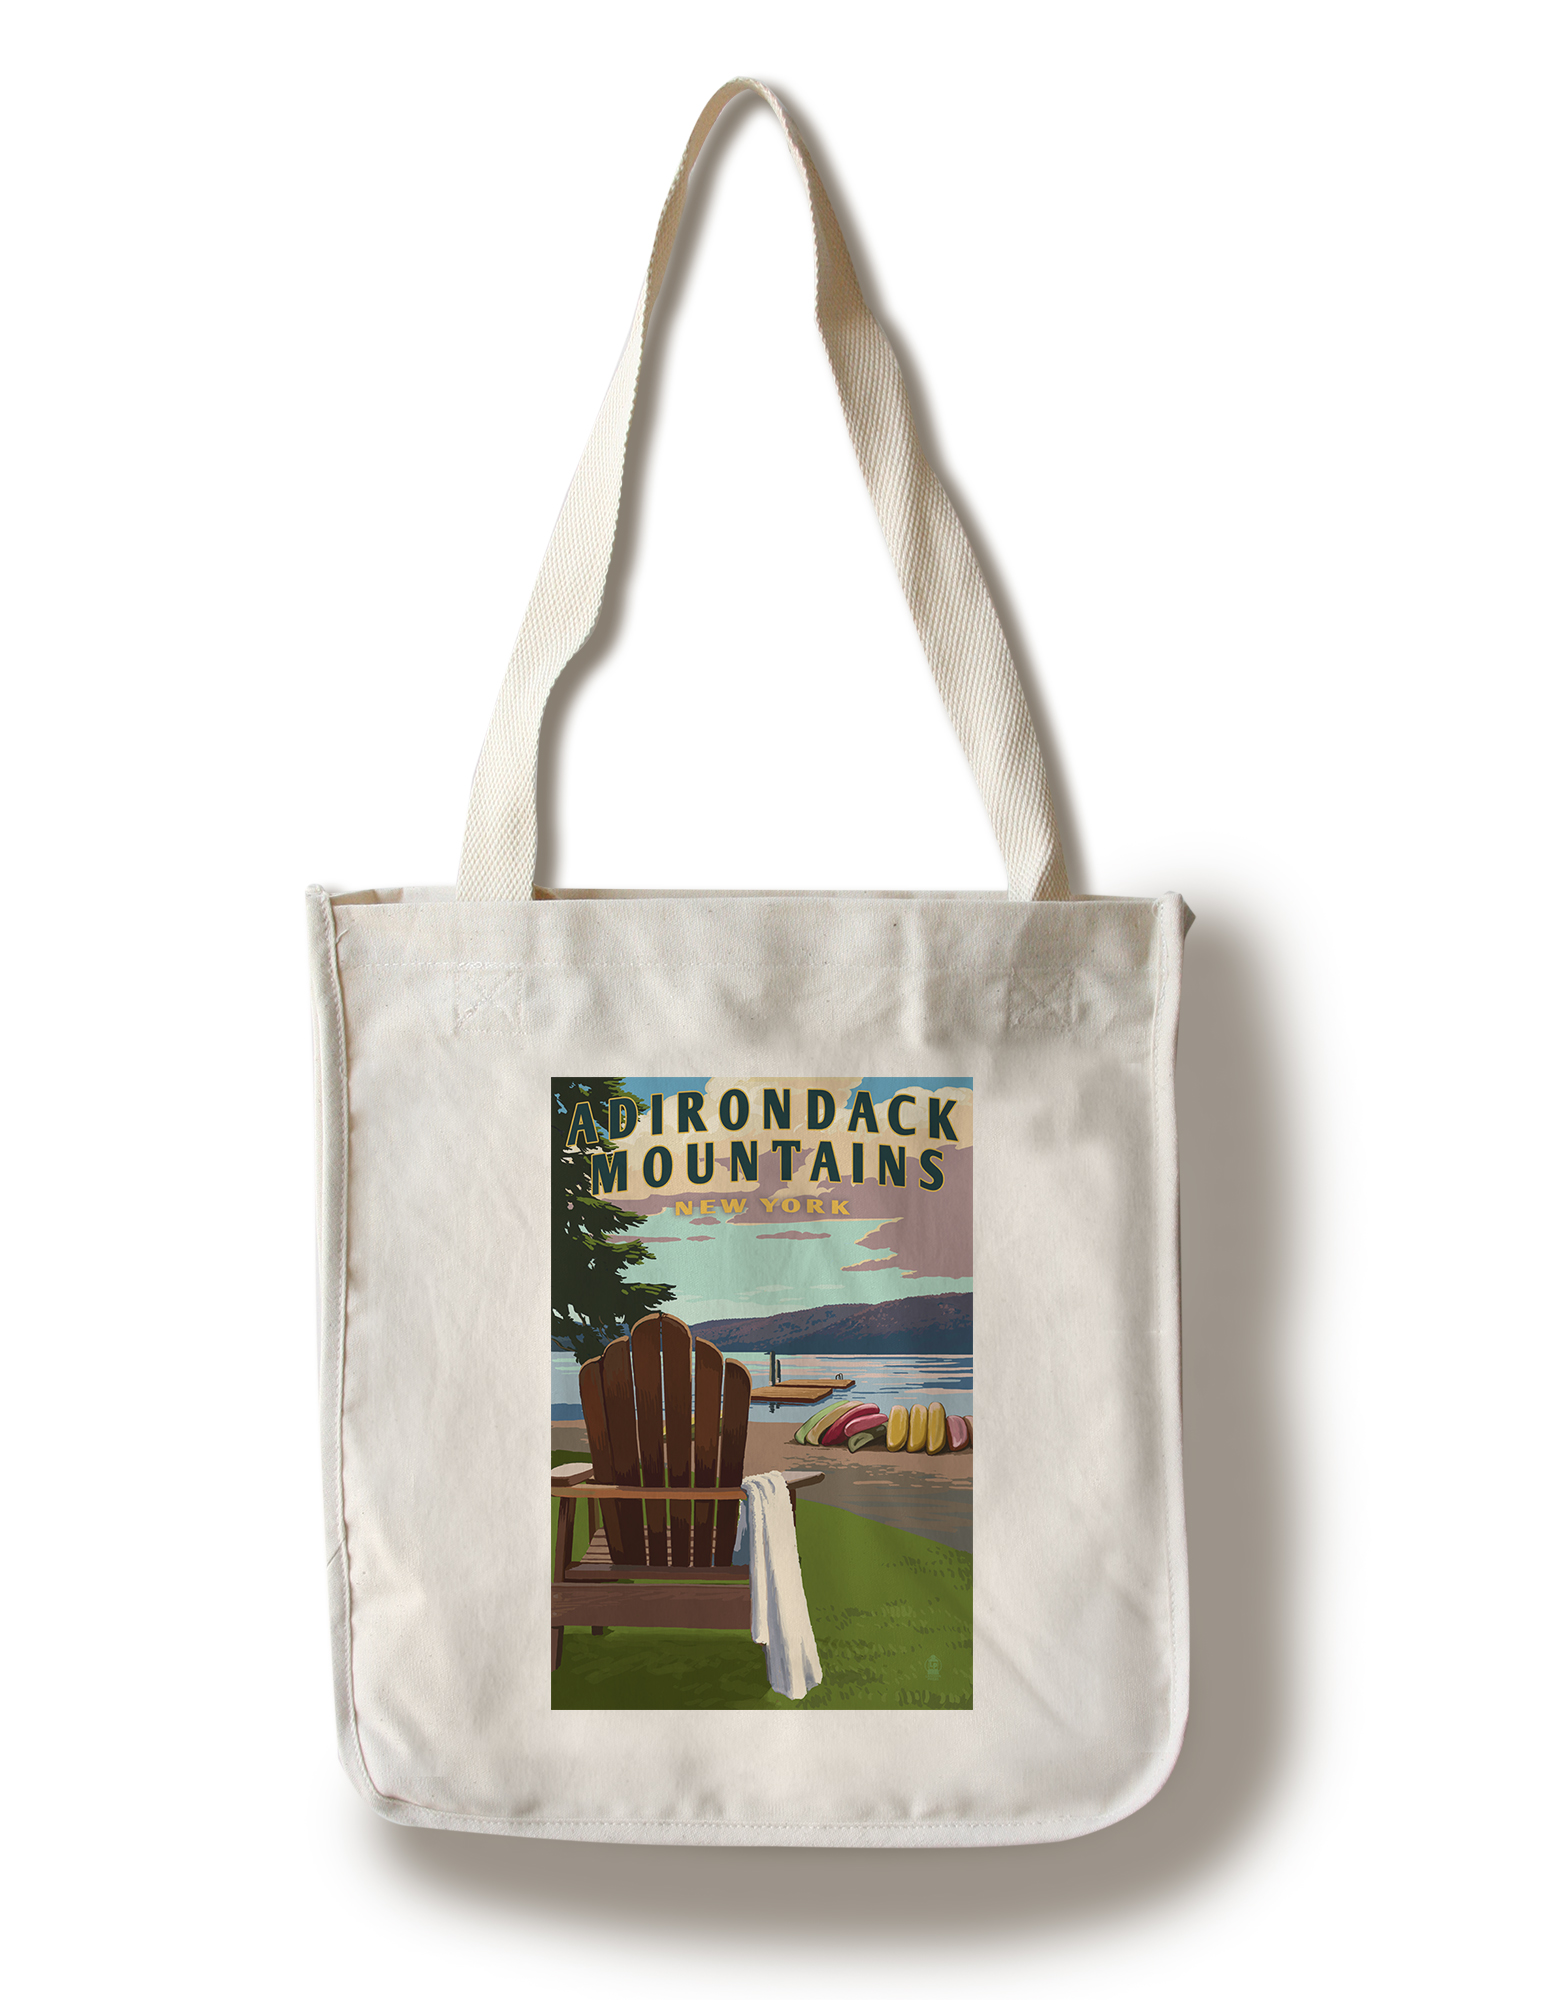 Adirondack Mountains, New York Adirondack Chair & Lake Lantern Press Artwork (100% Cotton Tote Bag Reusable) by Lantern Press